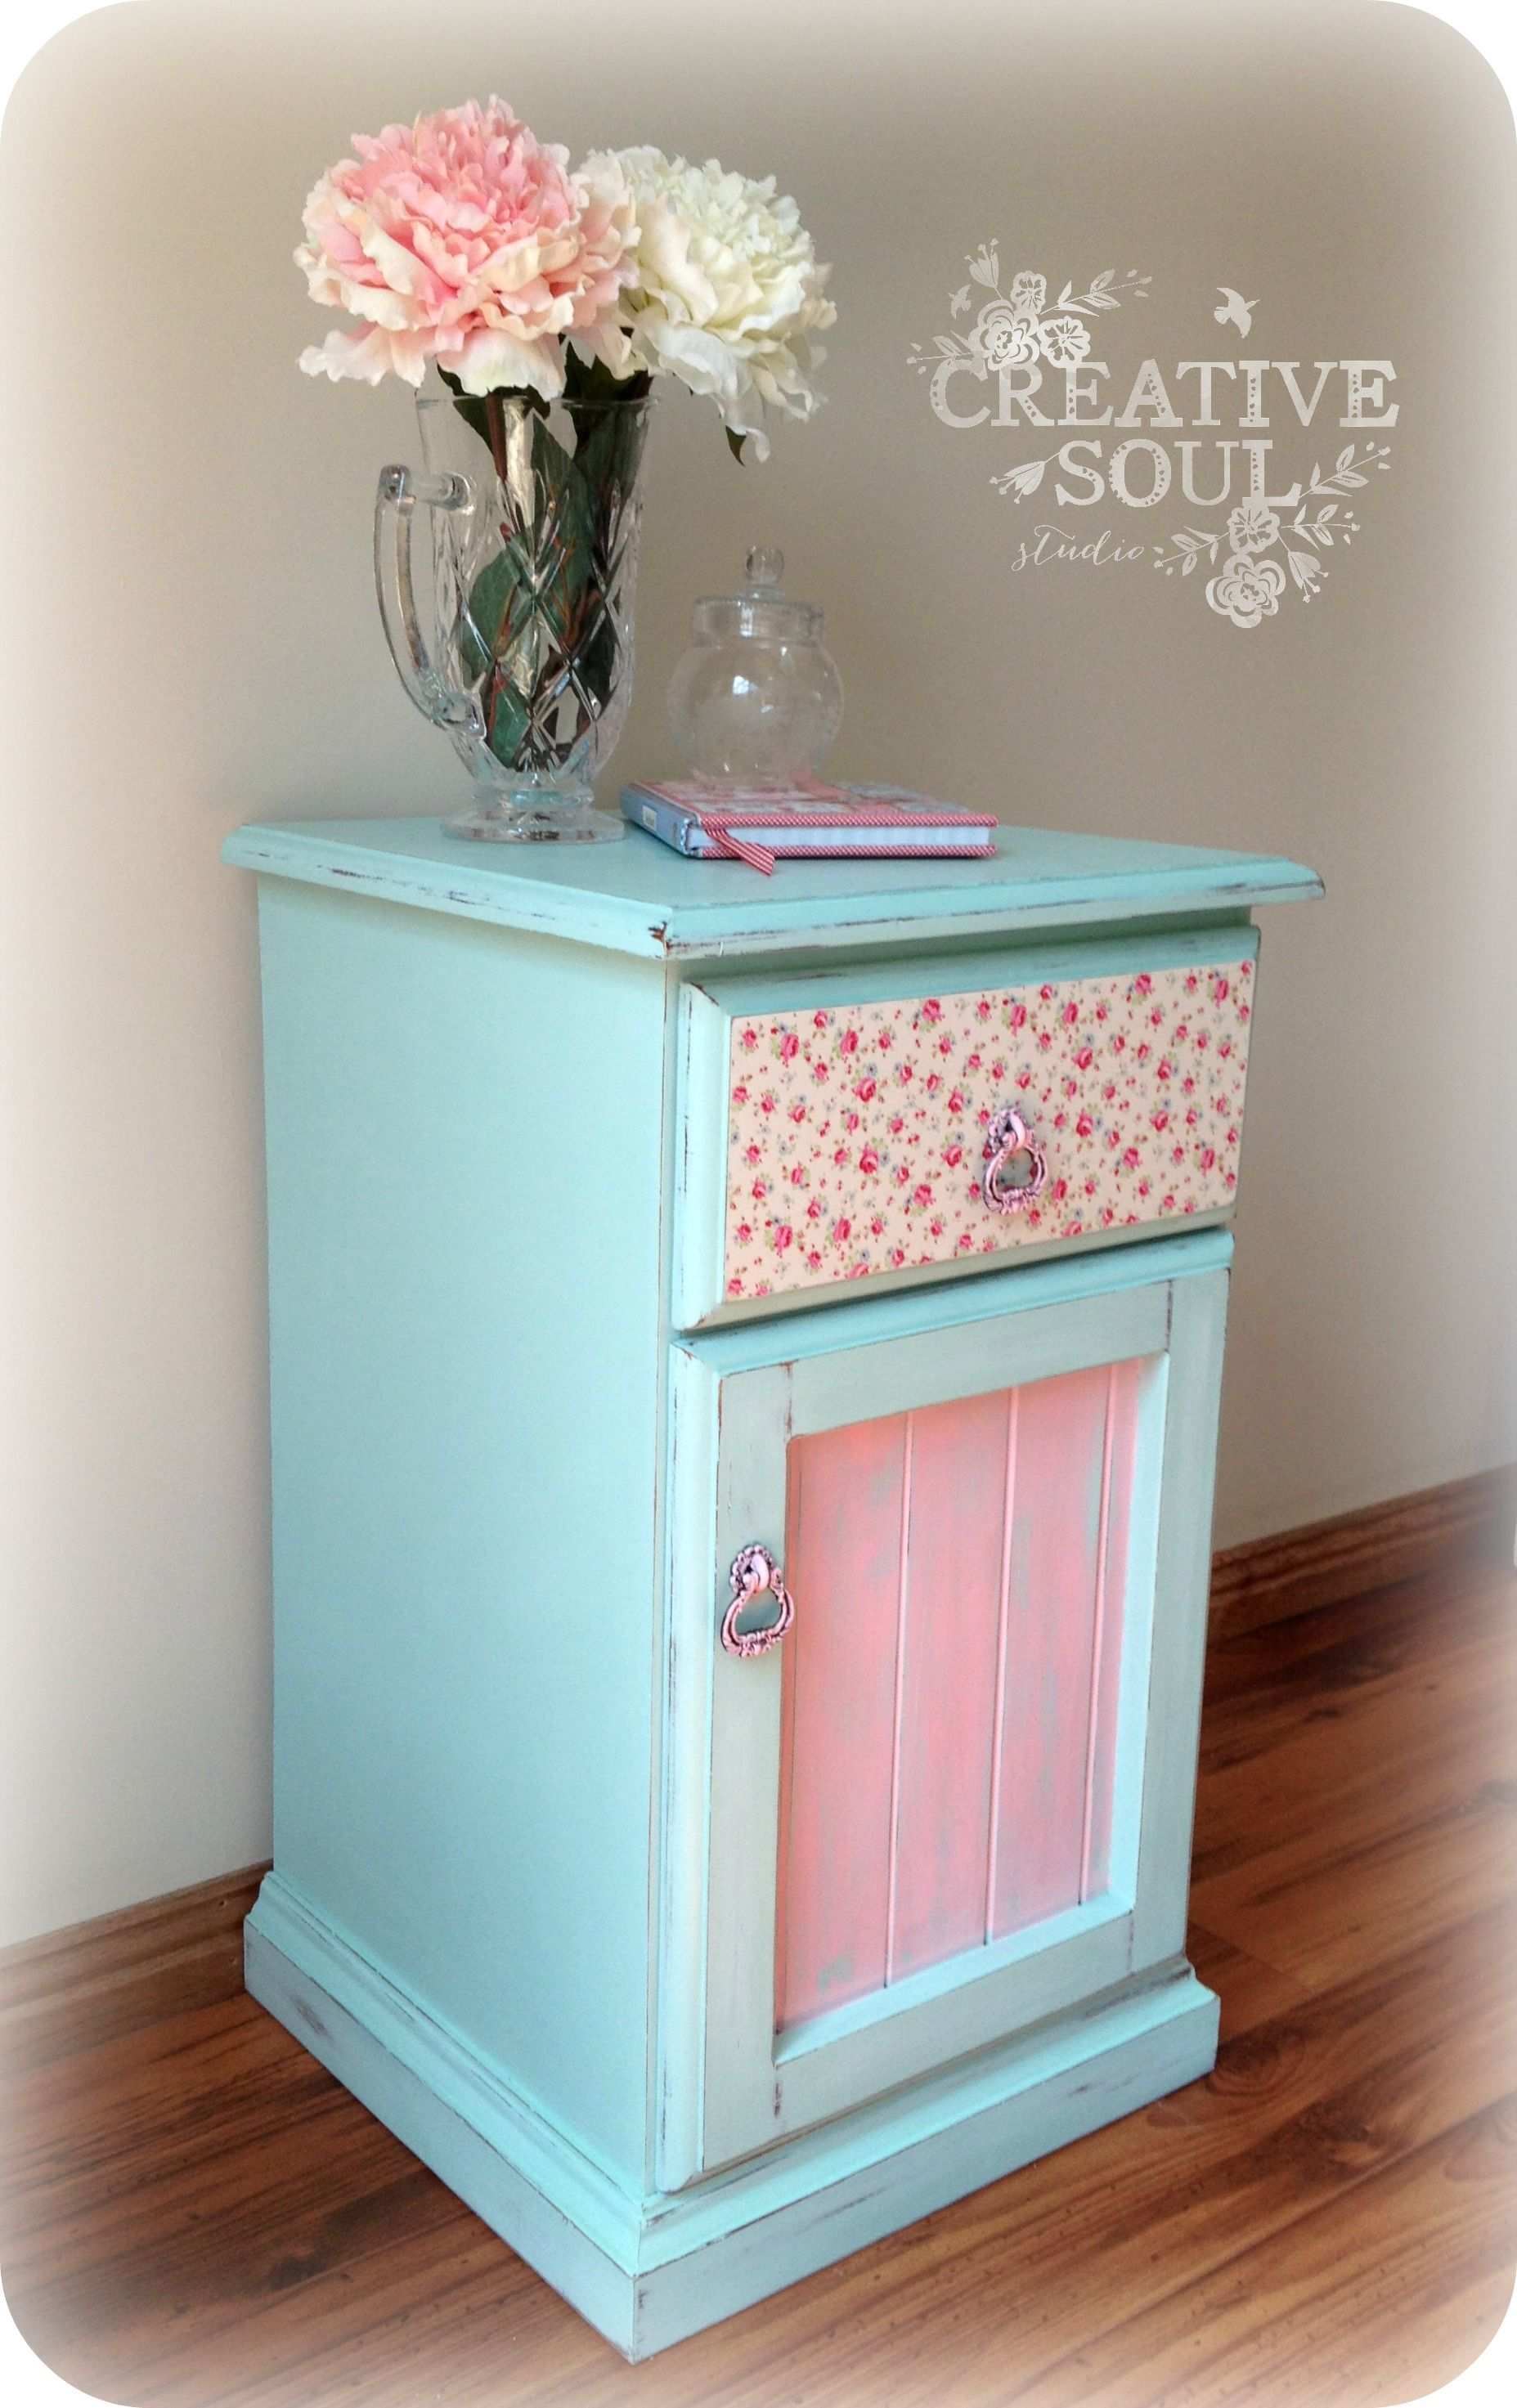 Shabby Floral Bedside Table Decoupaged Drawer Front And Painted In Annie Sloan Chalk Paint Revamp Furniture Furniture Makeover Painting Furniture Diy